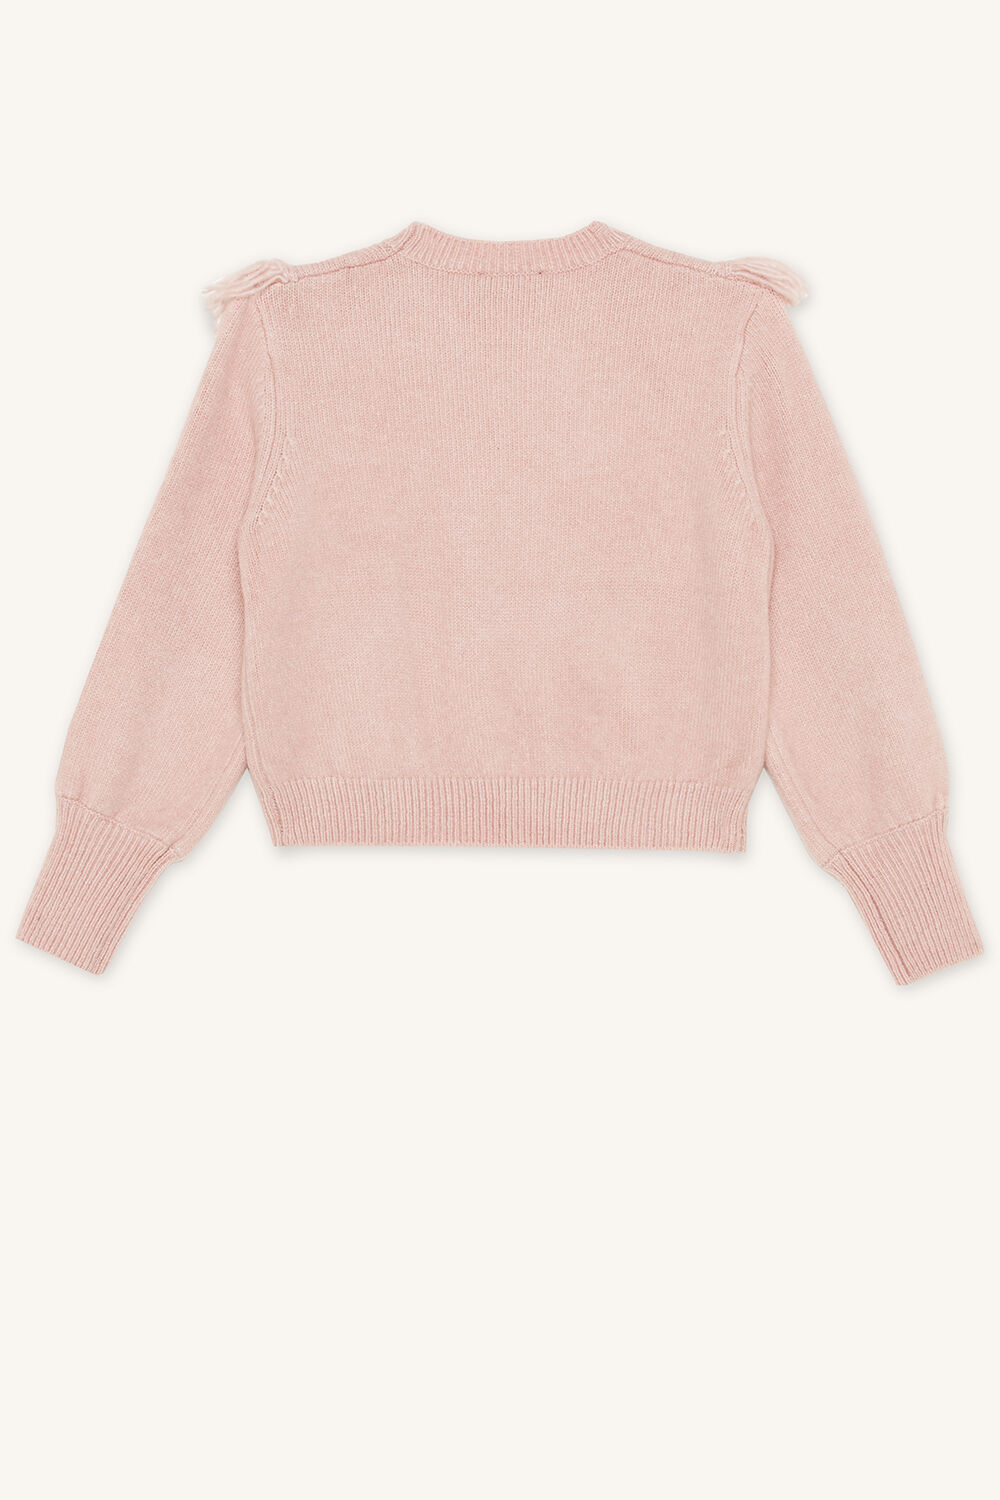 TWEEN NELL CABLE KNIT in colour PARADISE PINK